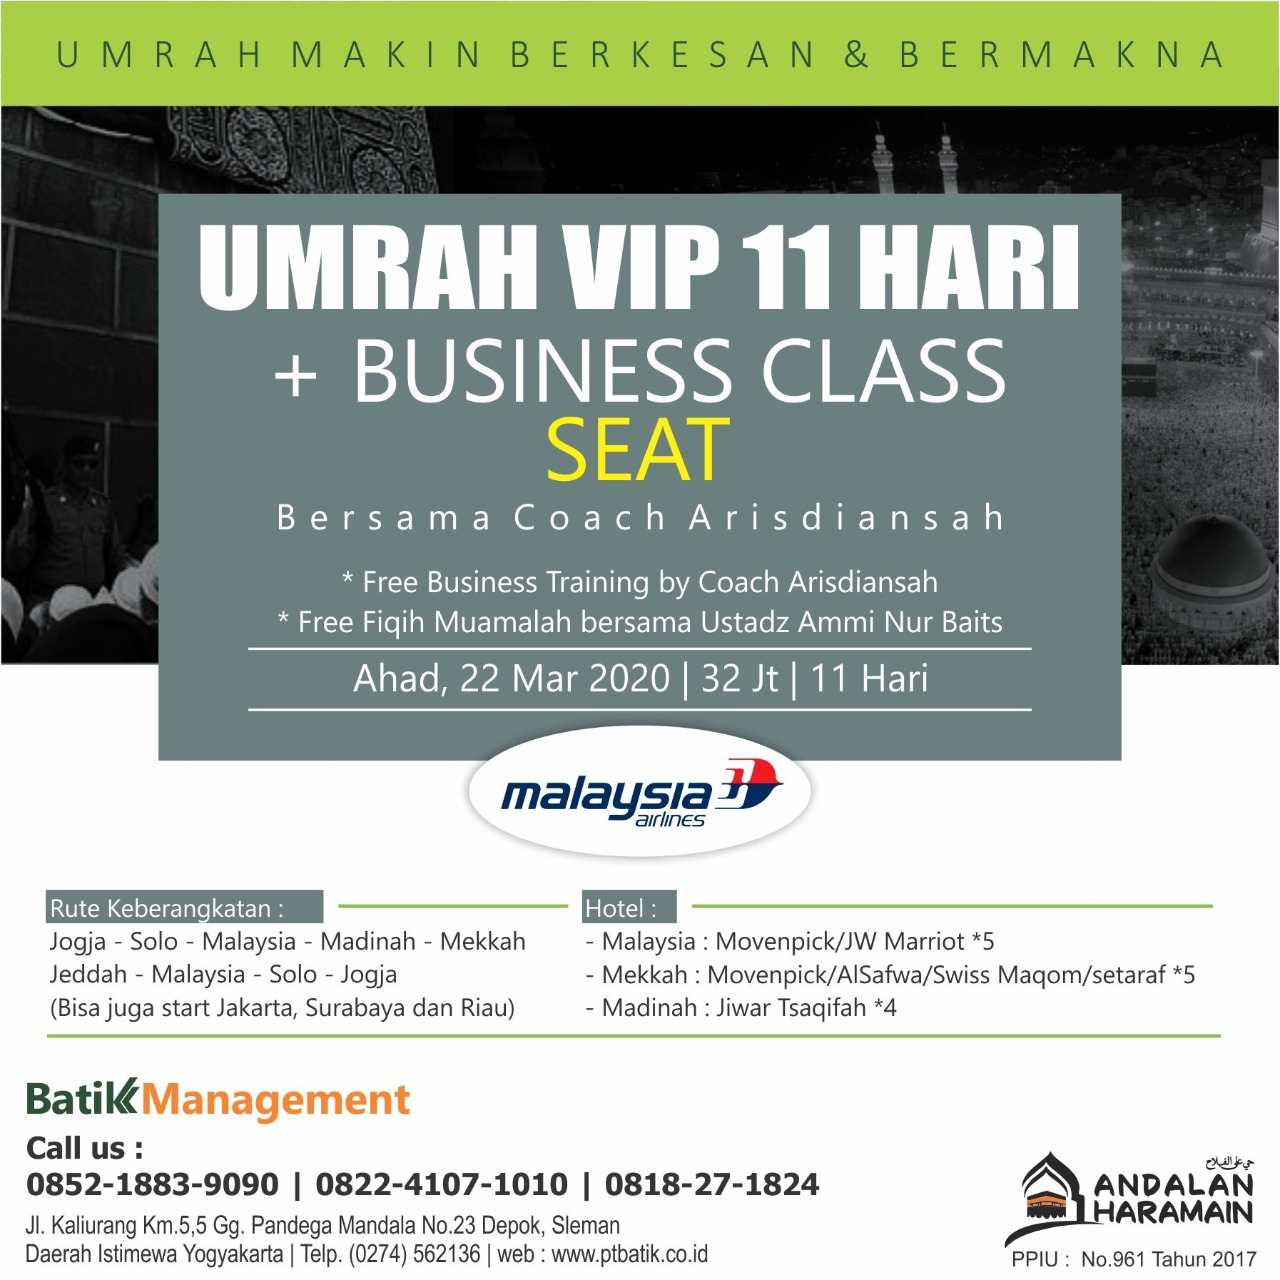 [SPESIAL] Umroh VIP 11 Hari PLUS BUSINESS CLASS SEAT - 22 MARET